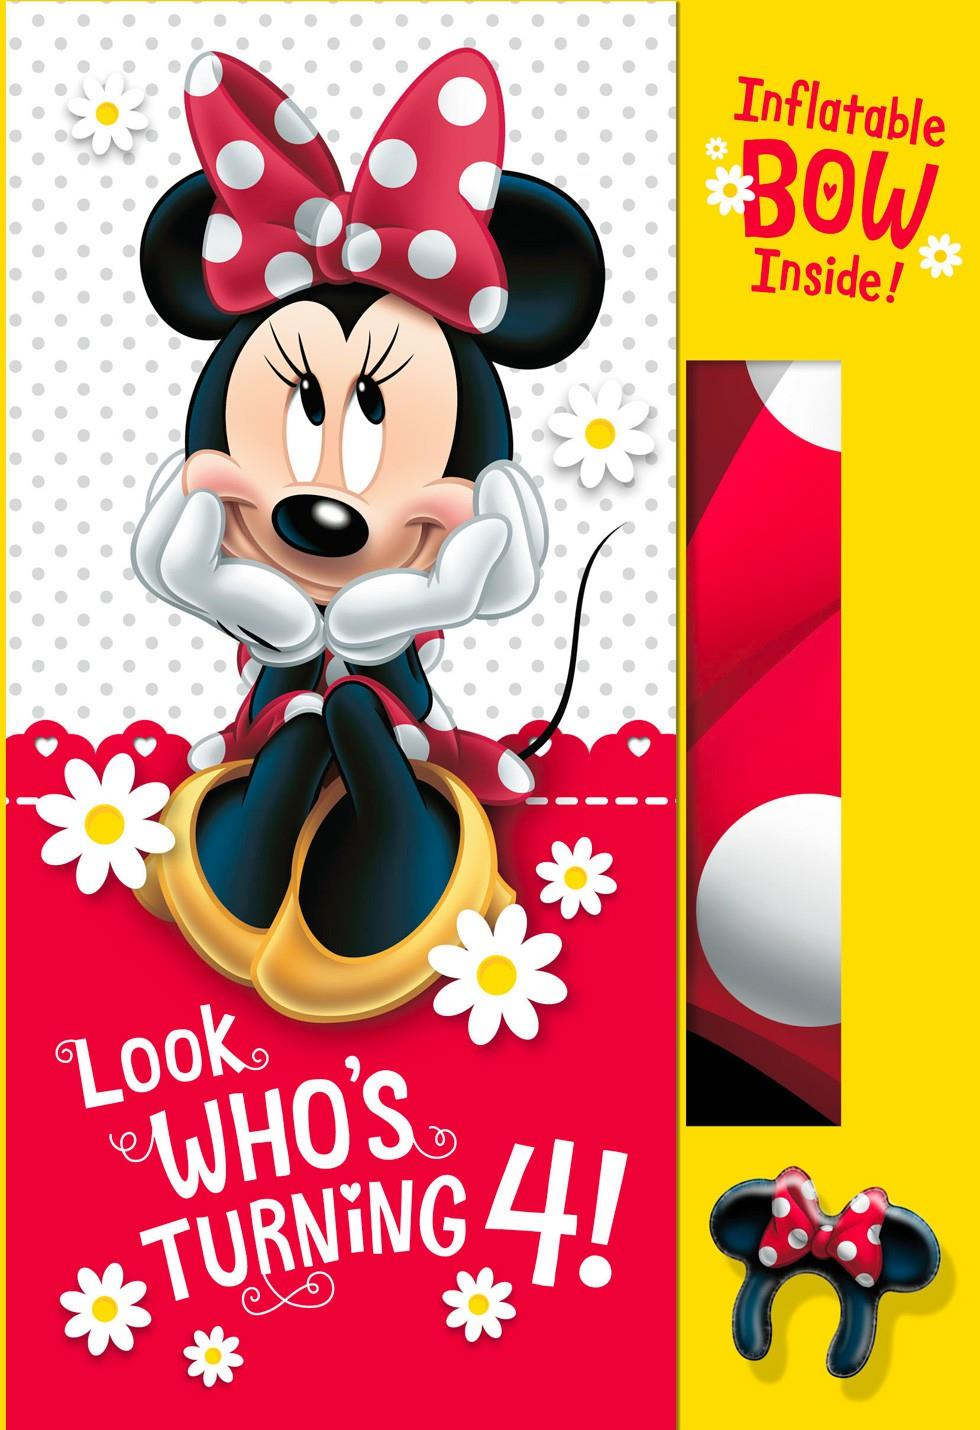 minnie mouse th birthday card with inflatable bow  greeting, Birthday card